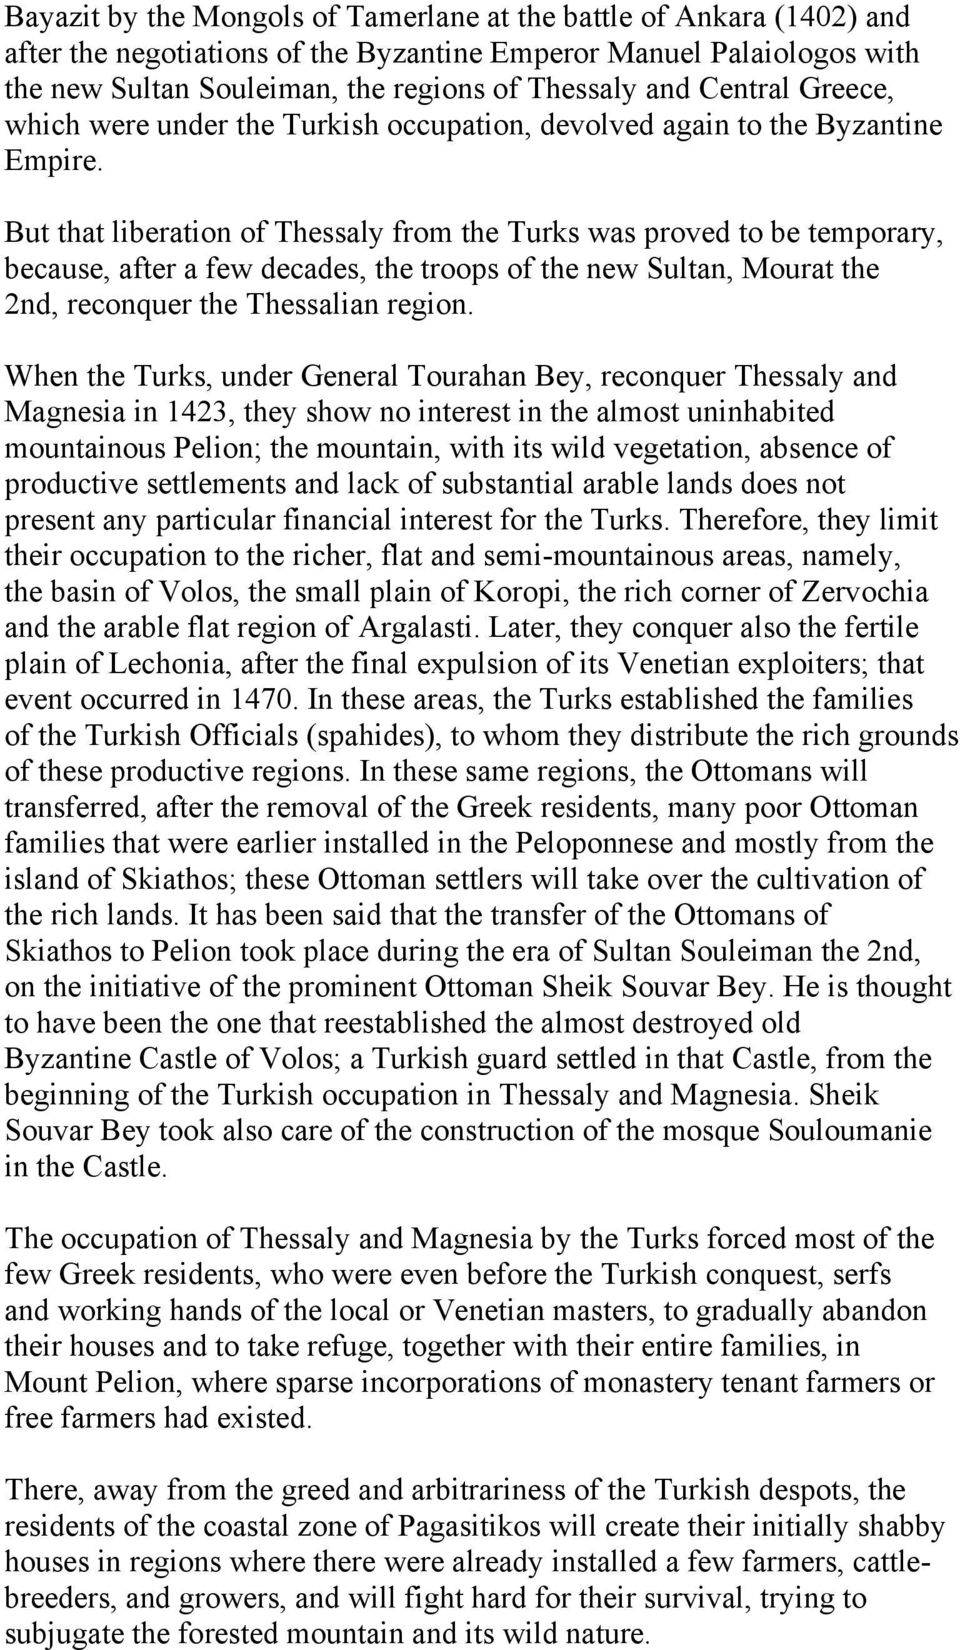 But that liberation of Thessaly from the Turks was proved to be temporary, because, after a few decades, the troops of the new Sultan, Mourat the 2nd, reconquer the Thessalian region.